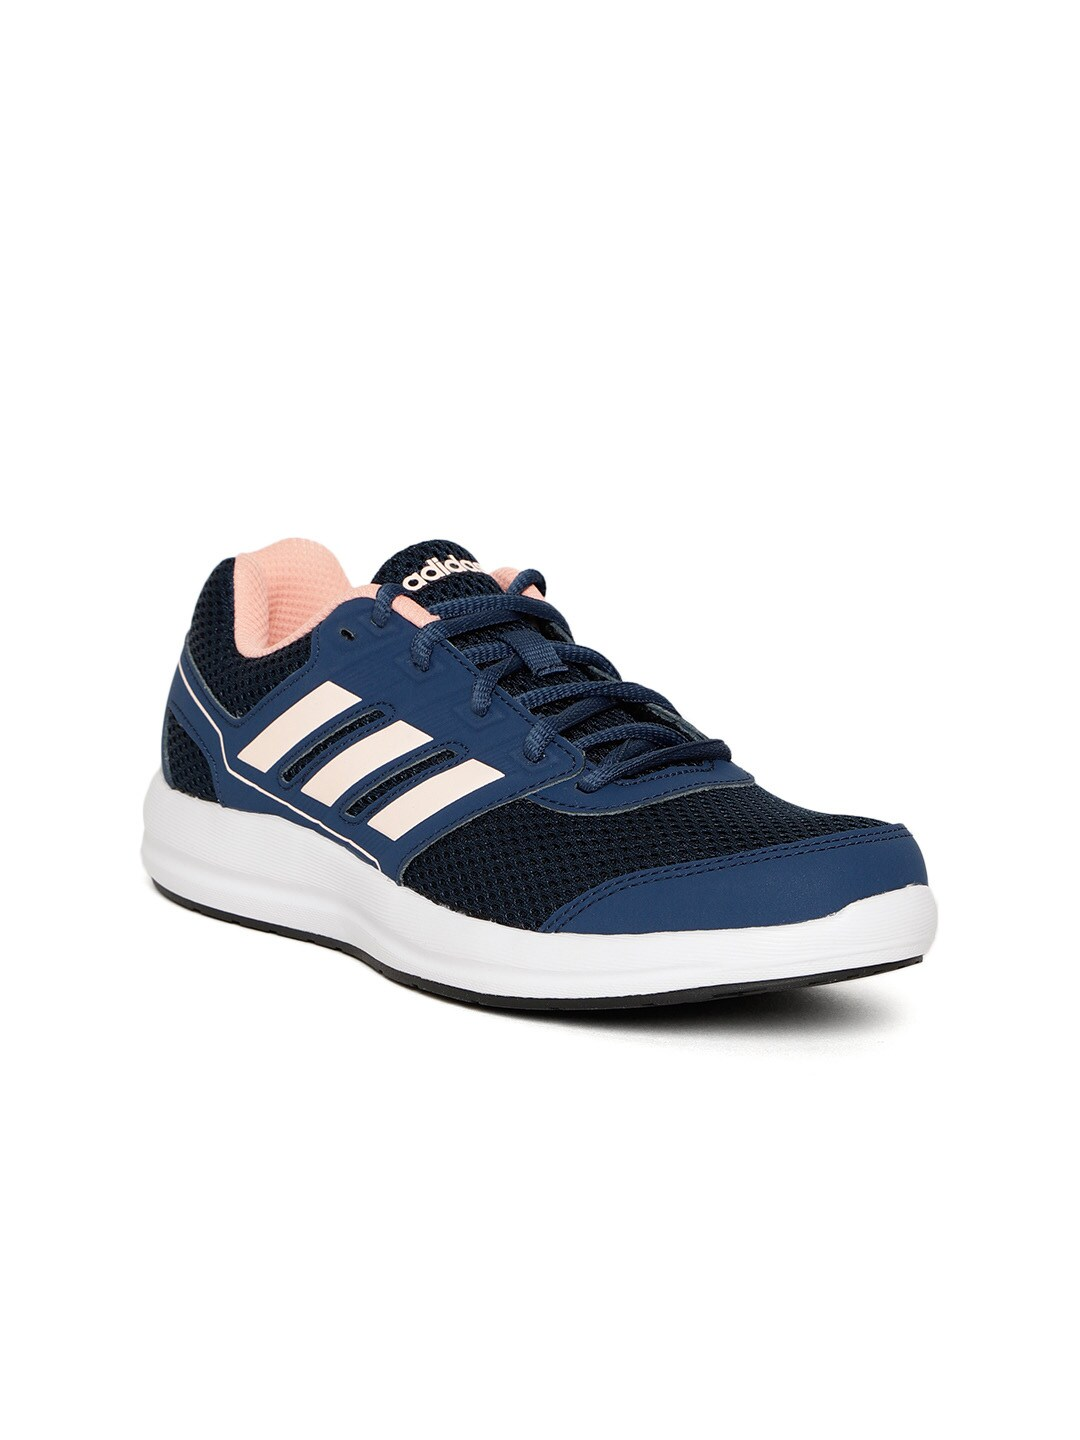 buy popular 4e34e 13648 Adidas Shoes - Buy Adidas Shoes for Men   Women Online - Myntra